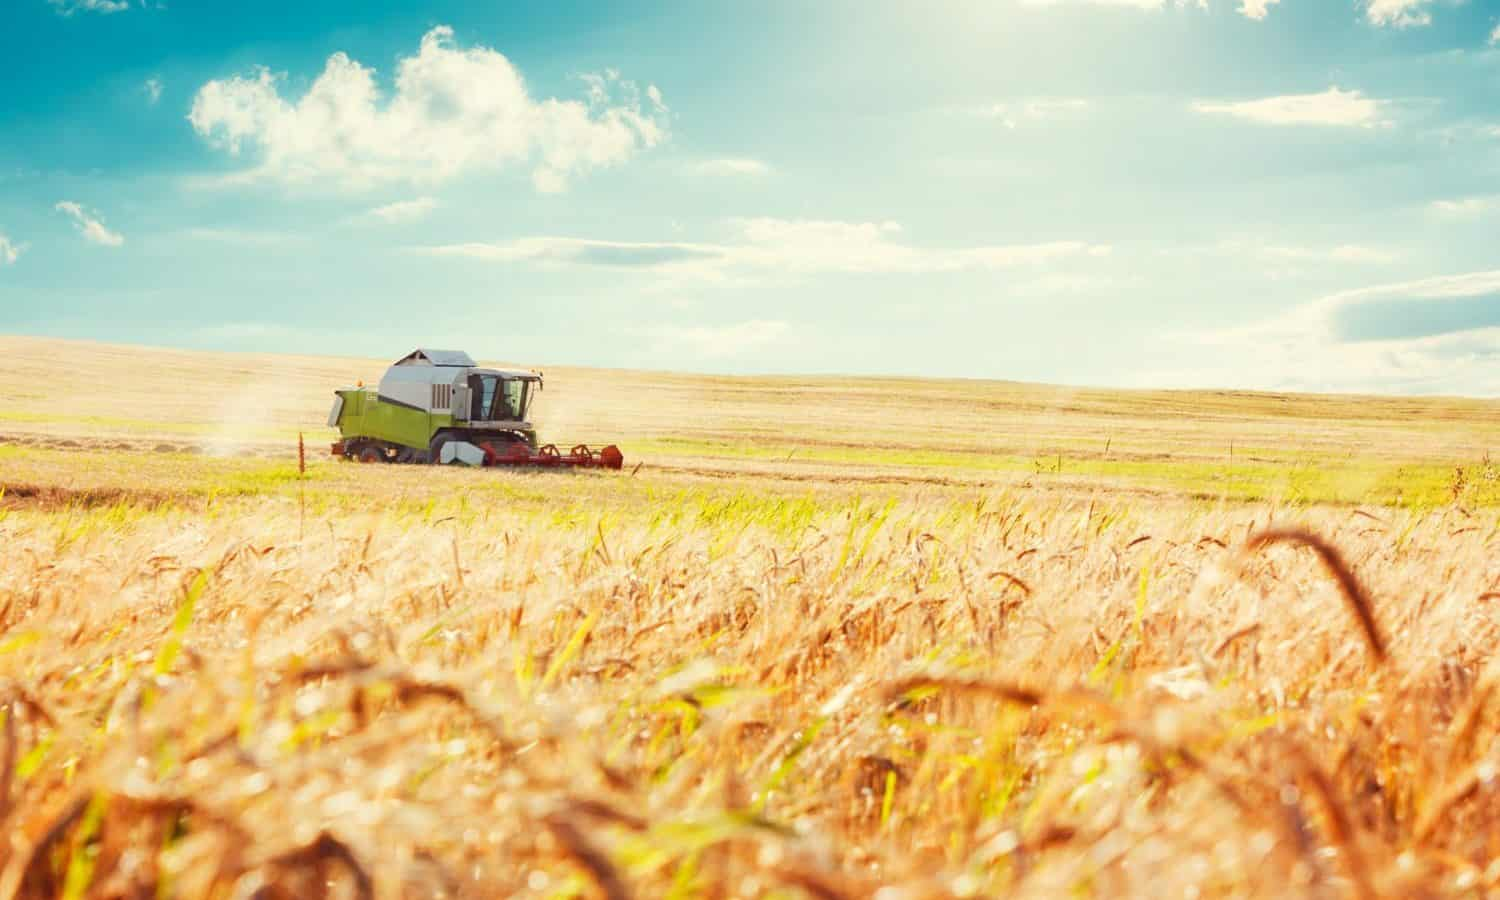 The Farm Bill is up for renewal again this year. Read about how this massive piece of legislation impacts nutrition, the agricultural economy, and the environment, and what good food advocates can do to help.